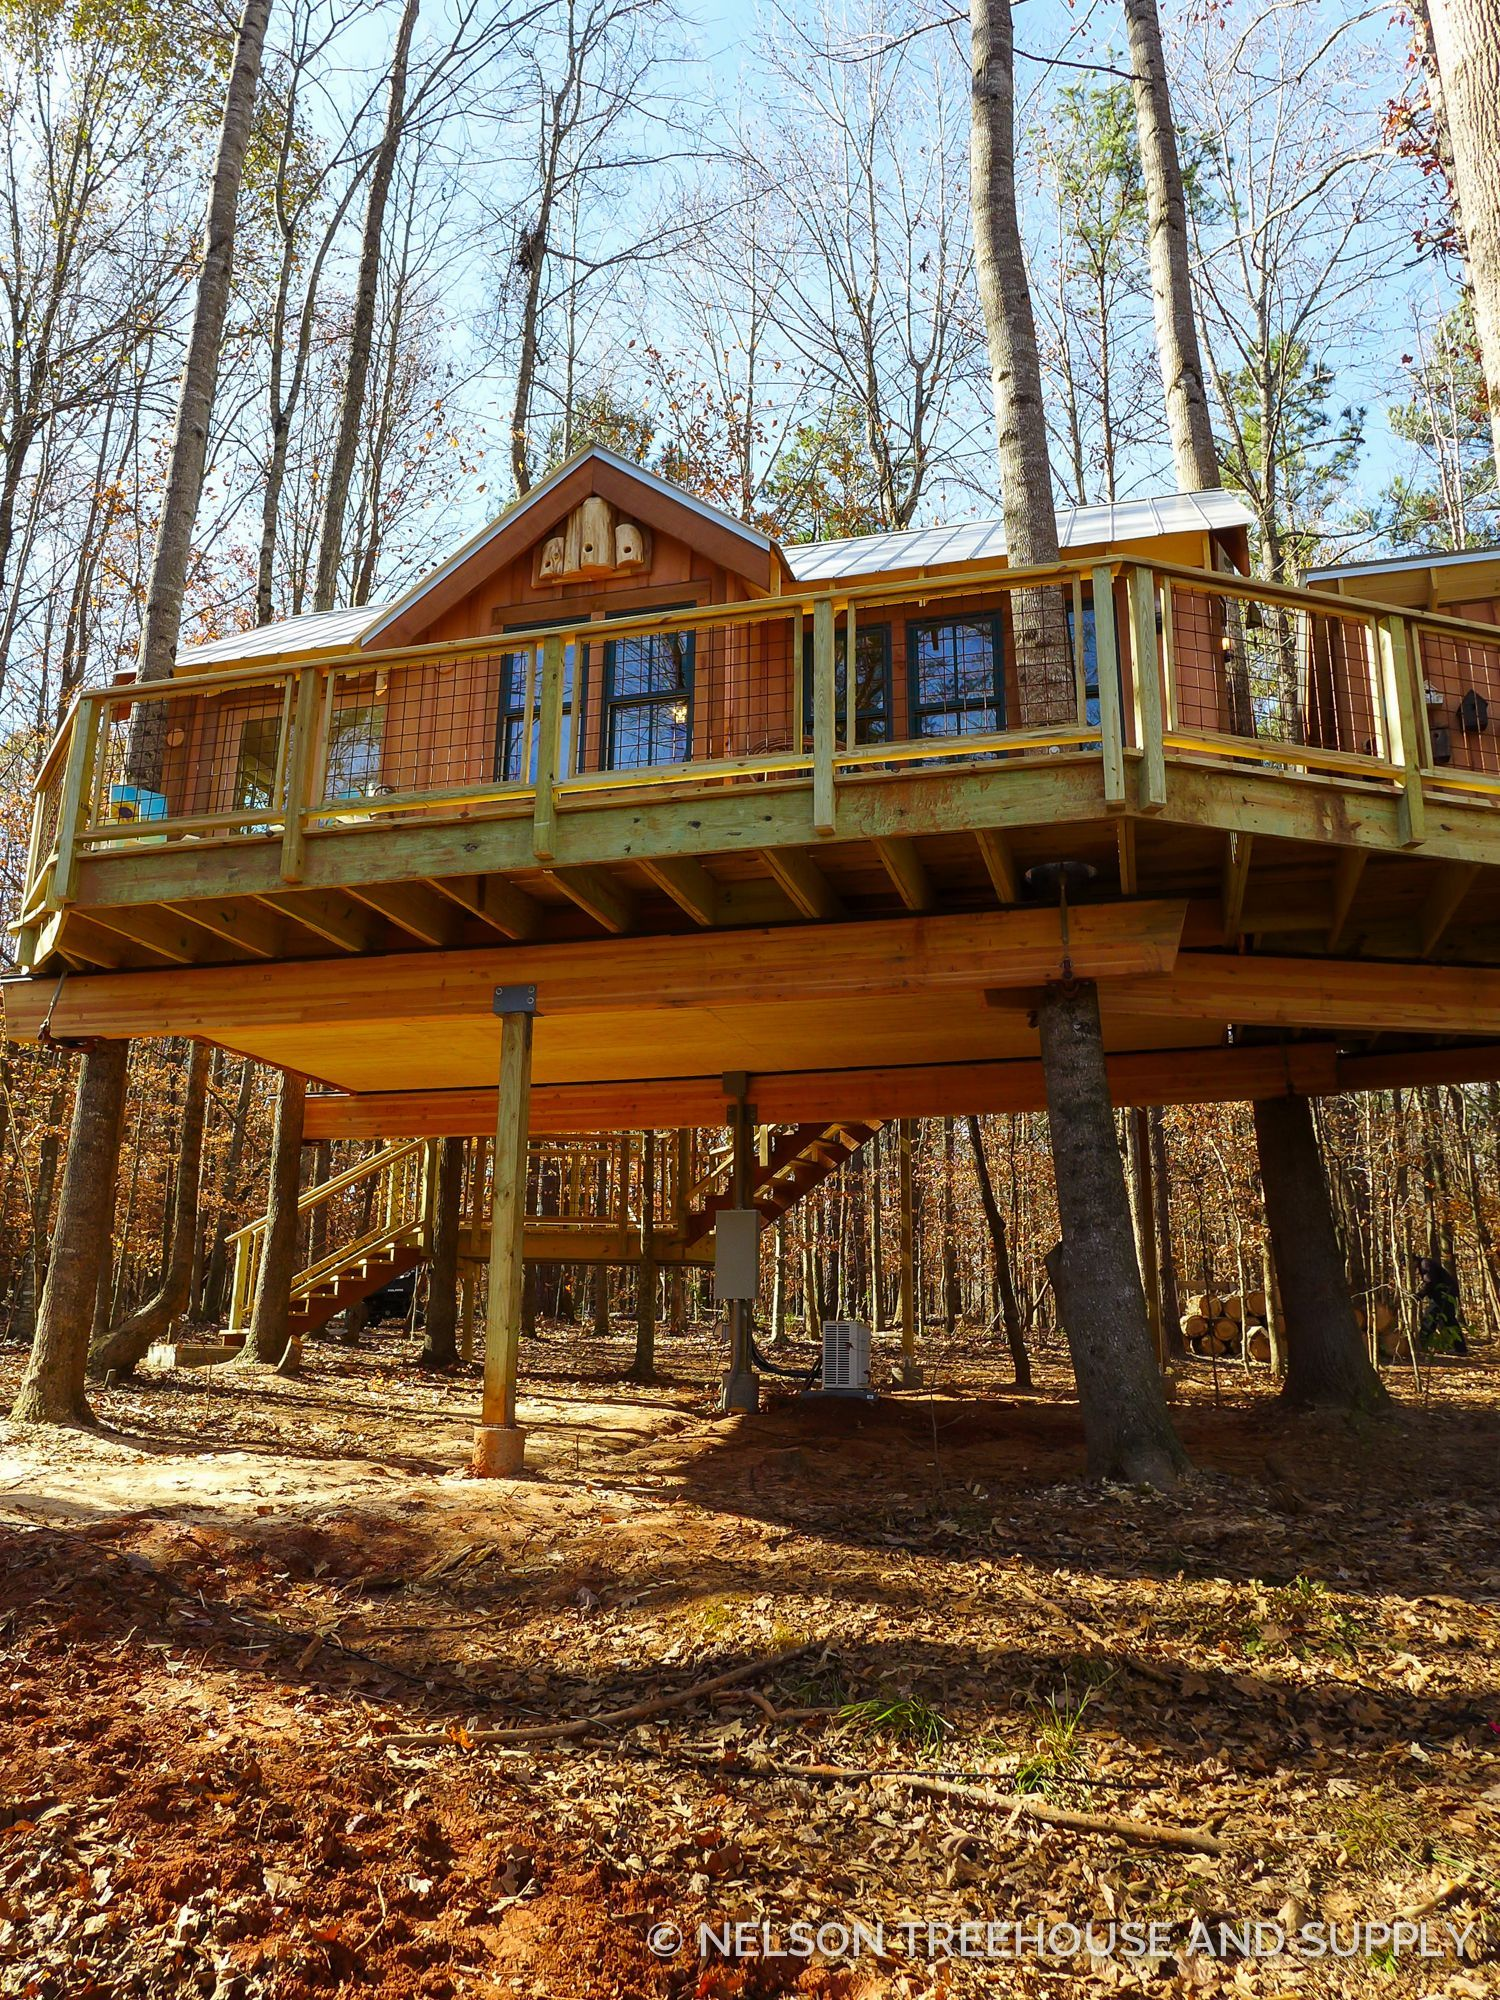 Tree House Is A Creative Idea From The Scaffold In Creating A Comfortable And Fresh Home Atmosphere Beautiful Tree Houses Tree House Designs Cool Tree Houses